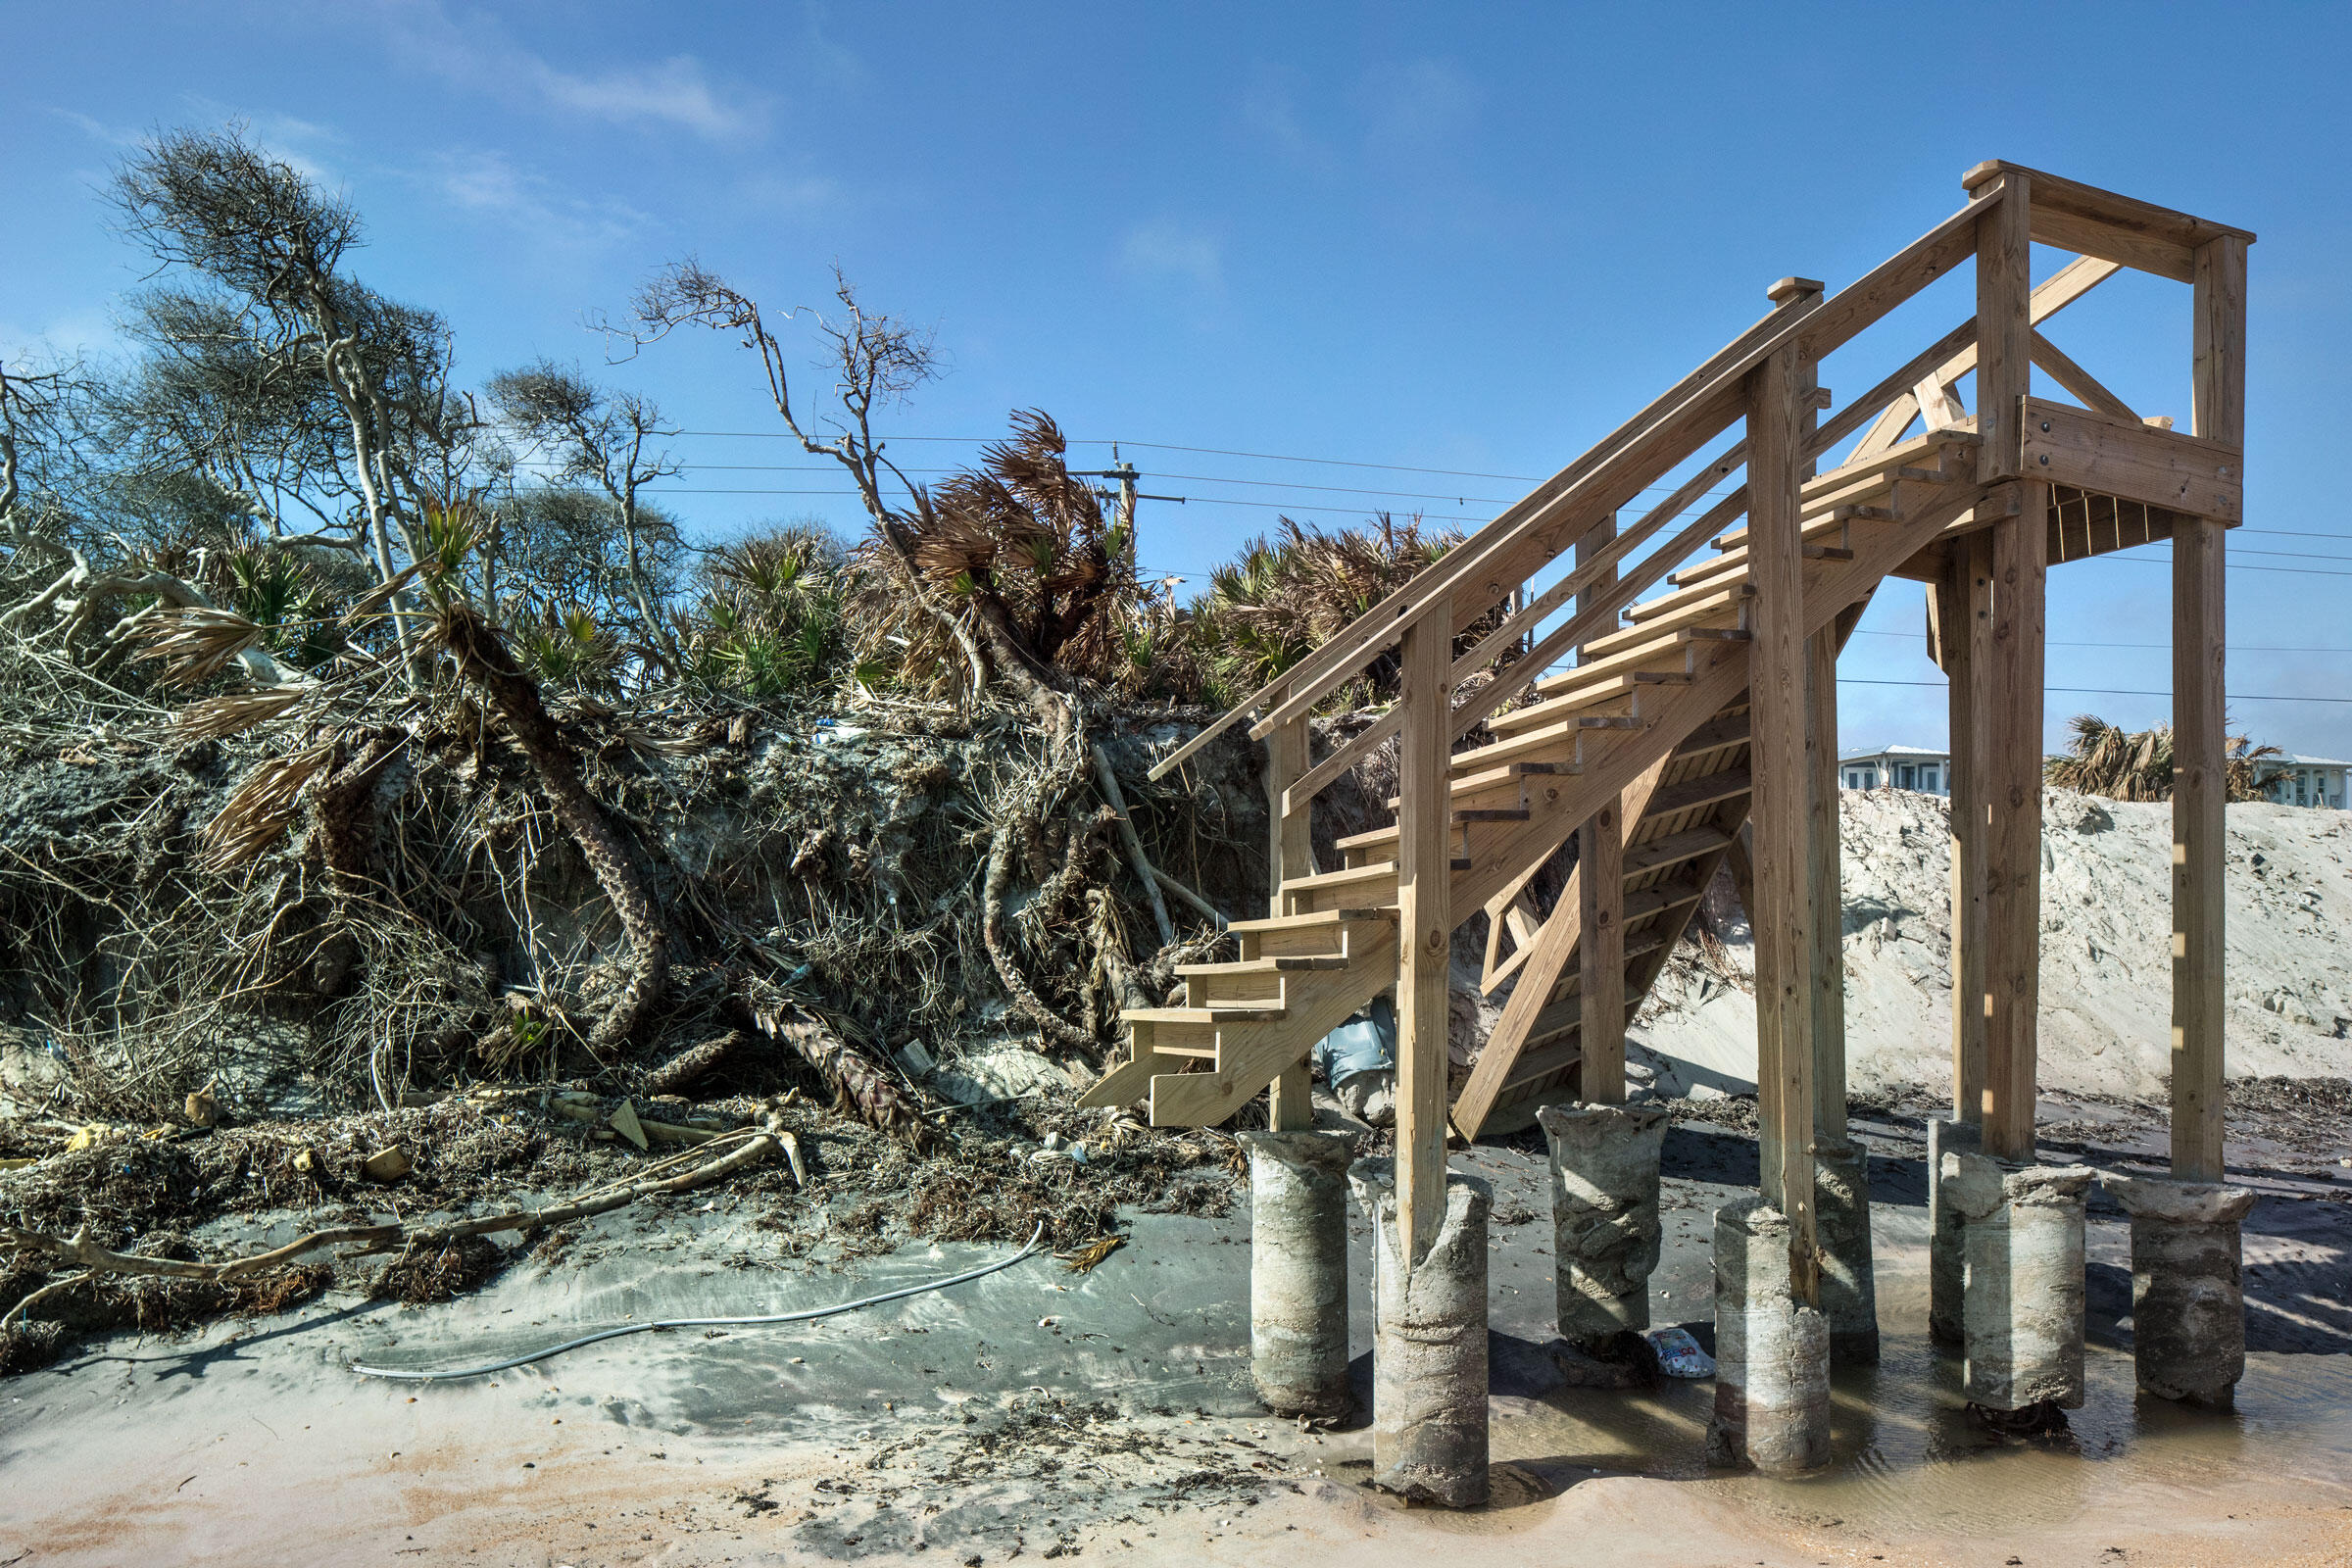 After Irma, freestanding stairs are all that's left of one home in South Ponte Vedra Beach. Andrew Moore